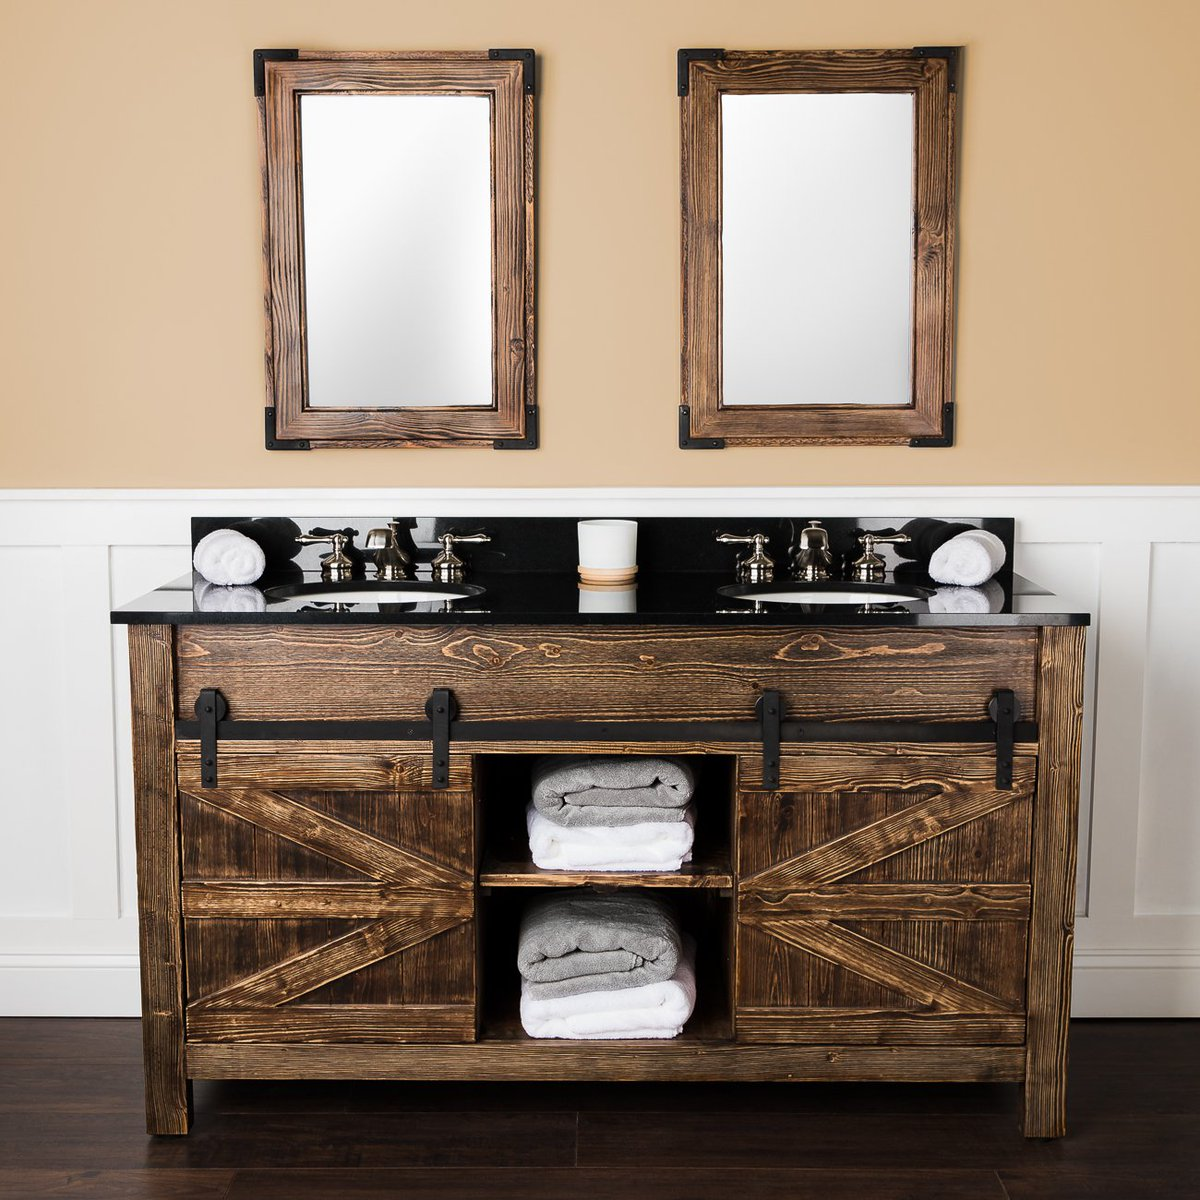 Vintage Tub Bath On Twitter Introducing New Randolph Morris Barn Door And Bamboo Bathroom Vanities With 20 Design Combinations To Choose From You Ll Find The Perfect Fit For Your Bathroom Https T Co 2d81gaiqyg